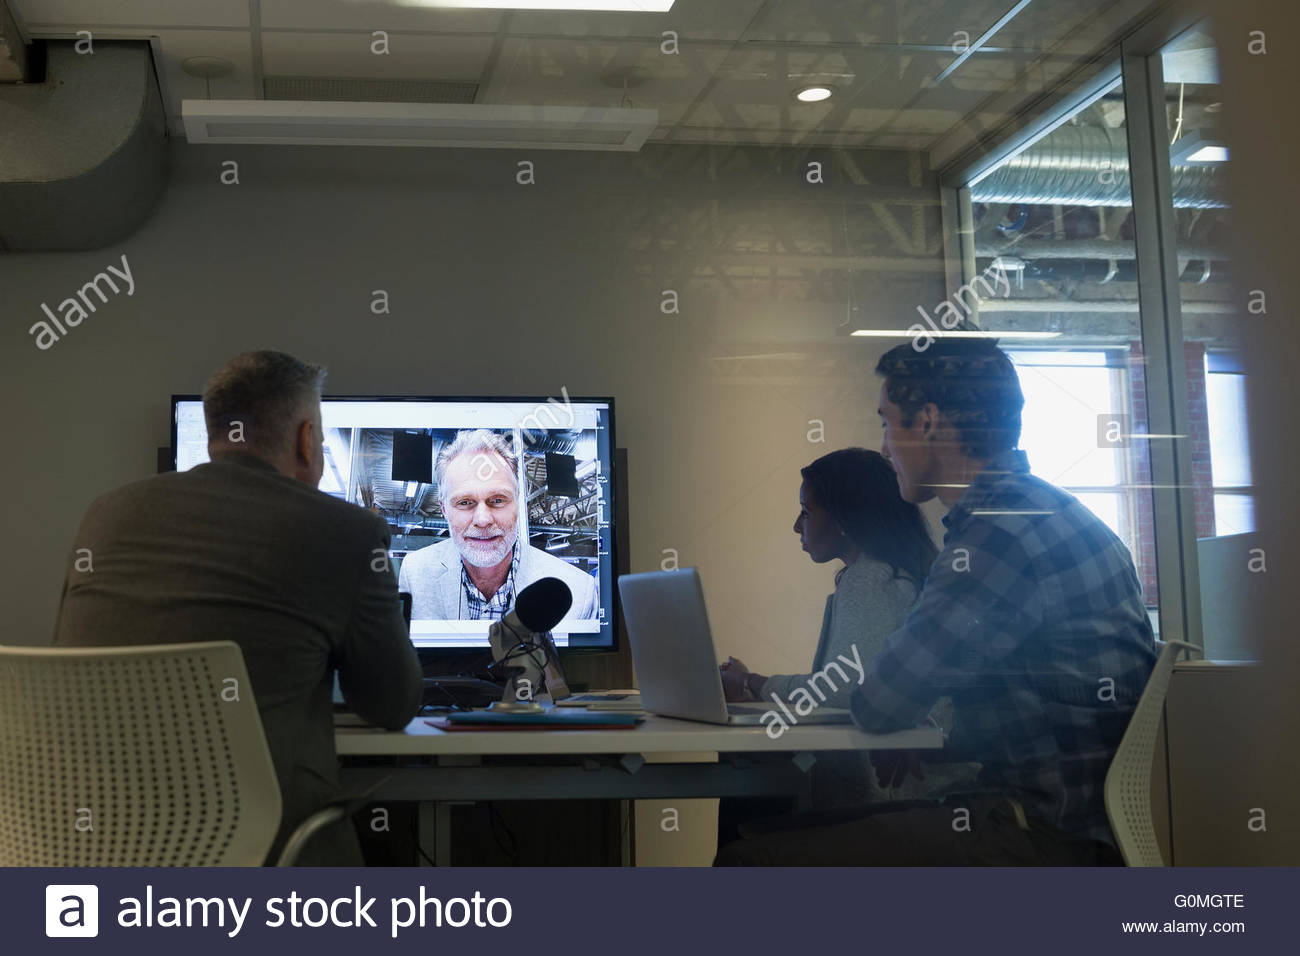 Business people in video conference meeting - Stock Image